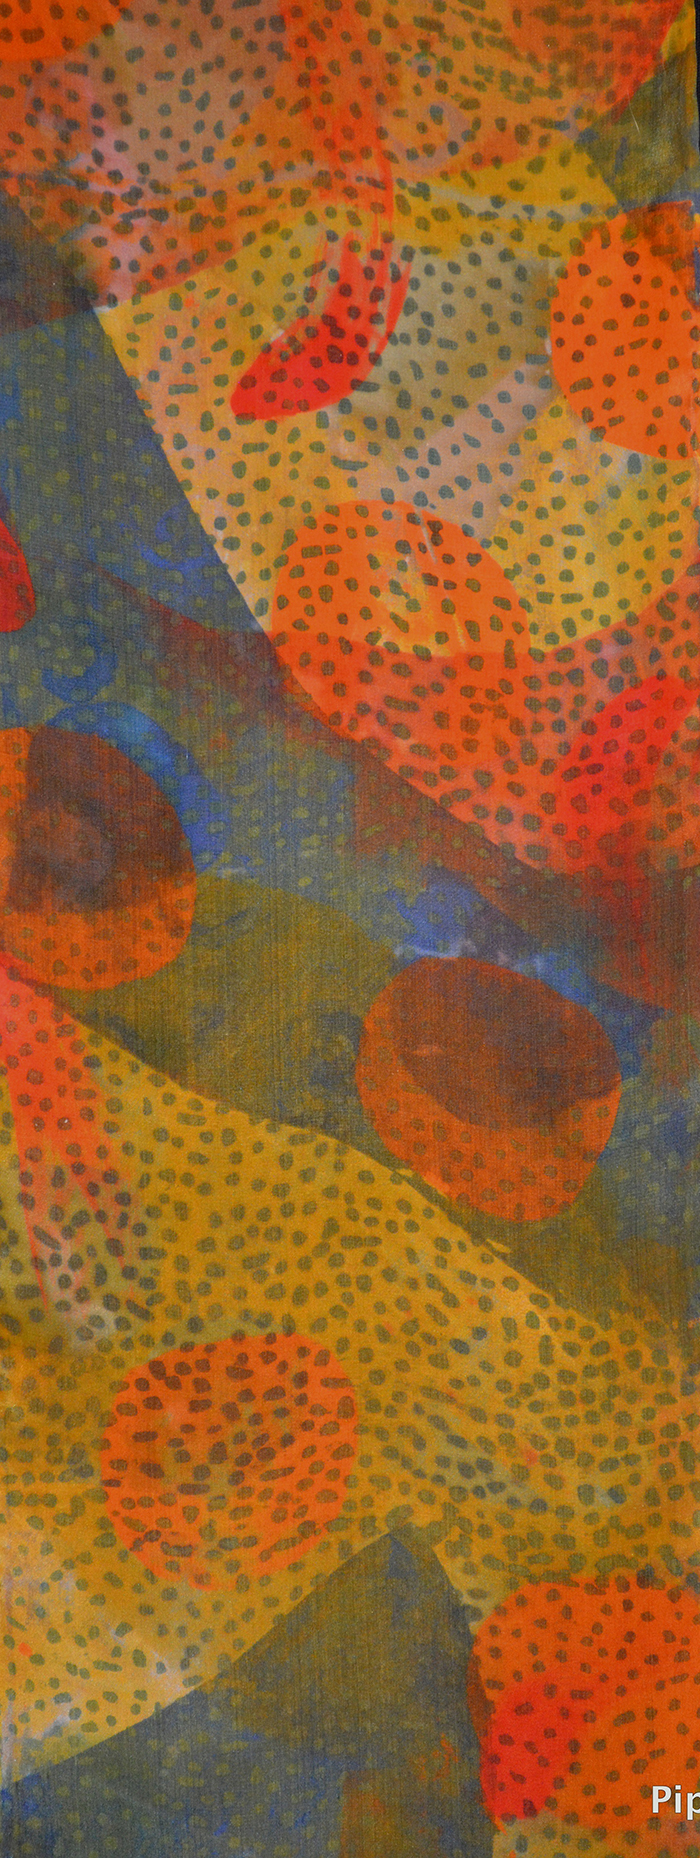 detail 8x54, 2012, fiber-reactive dyes, painted and printed using stencils  and thermofax screens, silk habutai